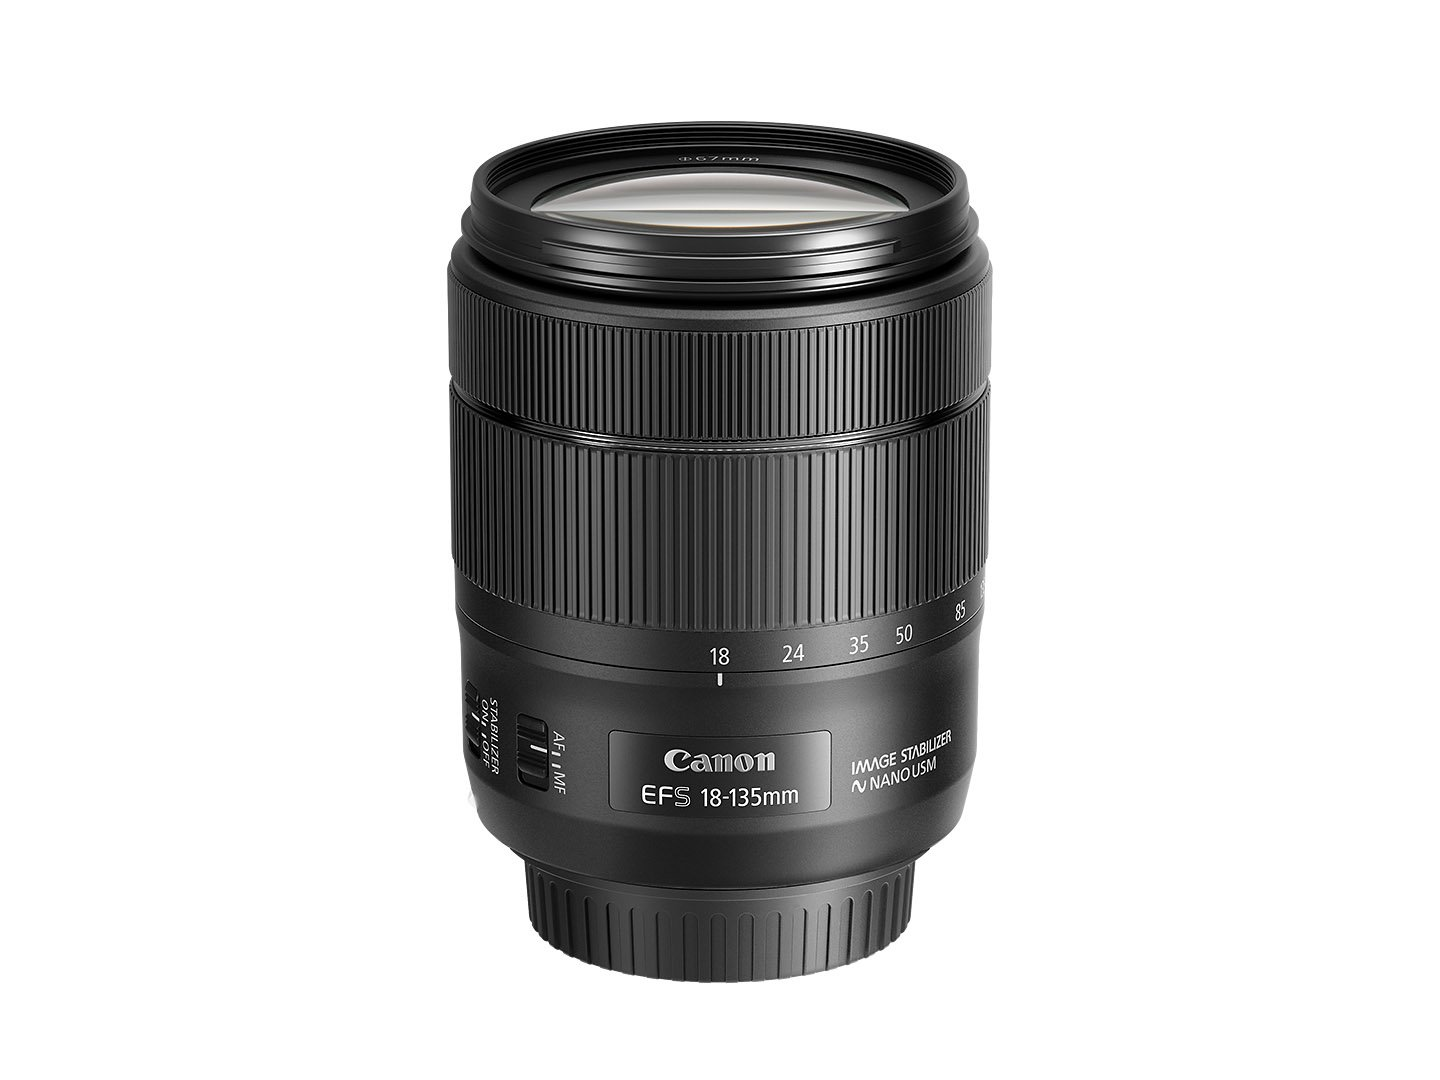 Canon EF-S 18-135mm f/3.5-5.6 Image Stabilization USM Lens (Black) by Canon